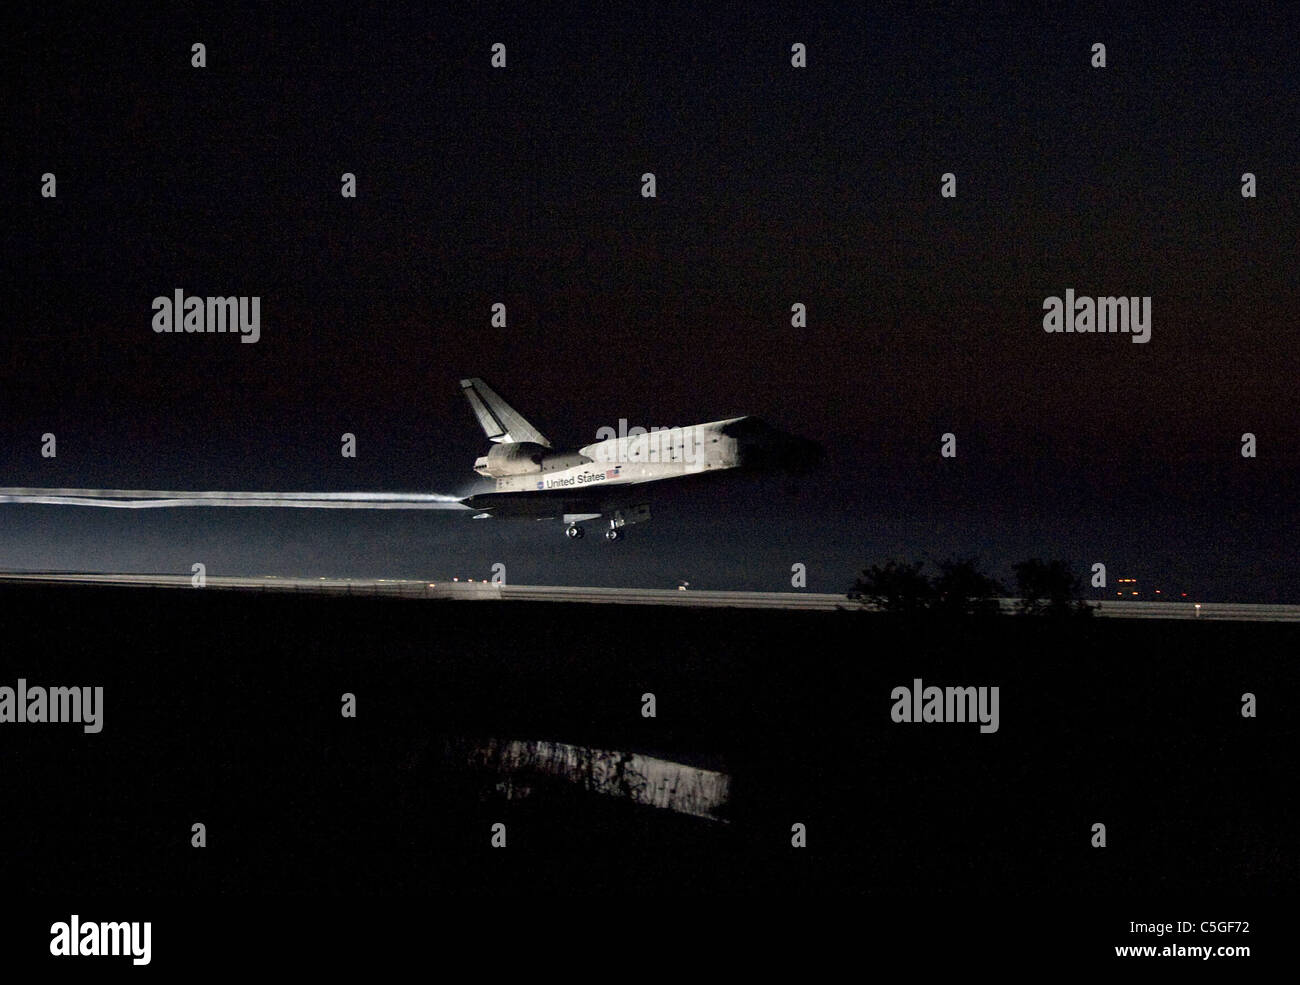 Final Space Shuttle mission Atlantis lands at Kennedy Space Center - Stock Image